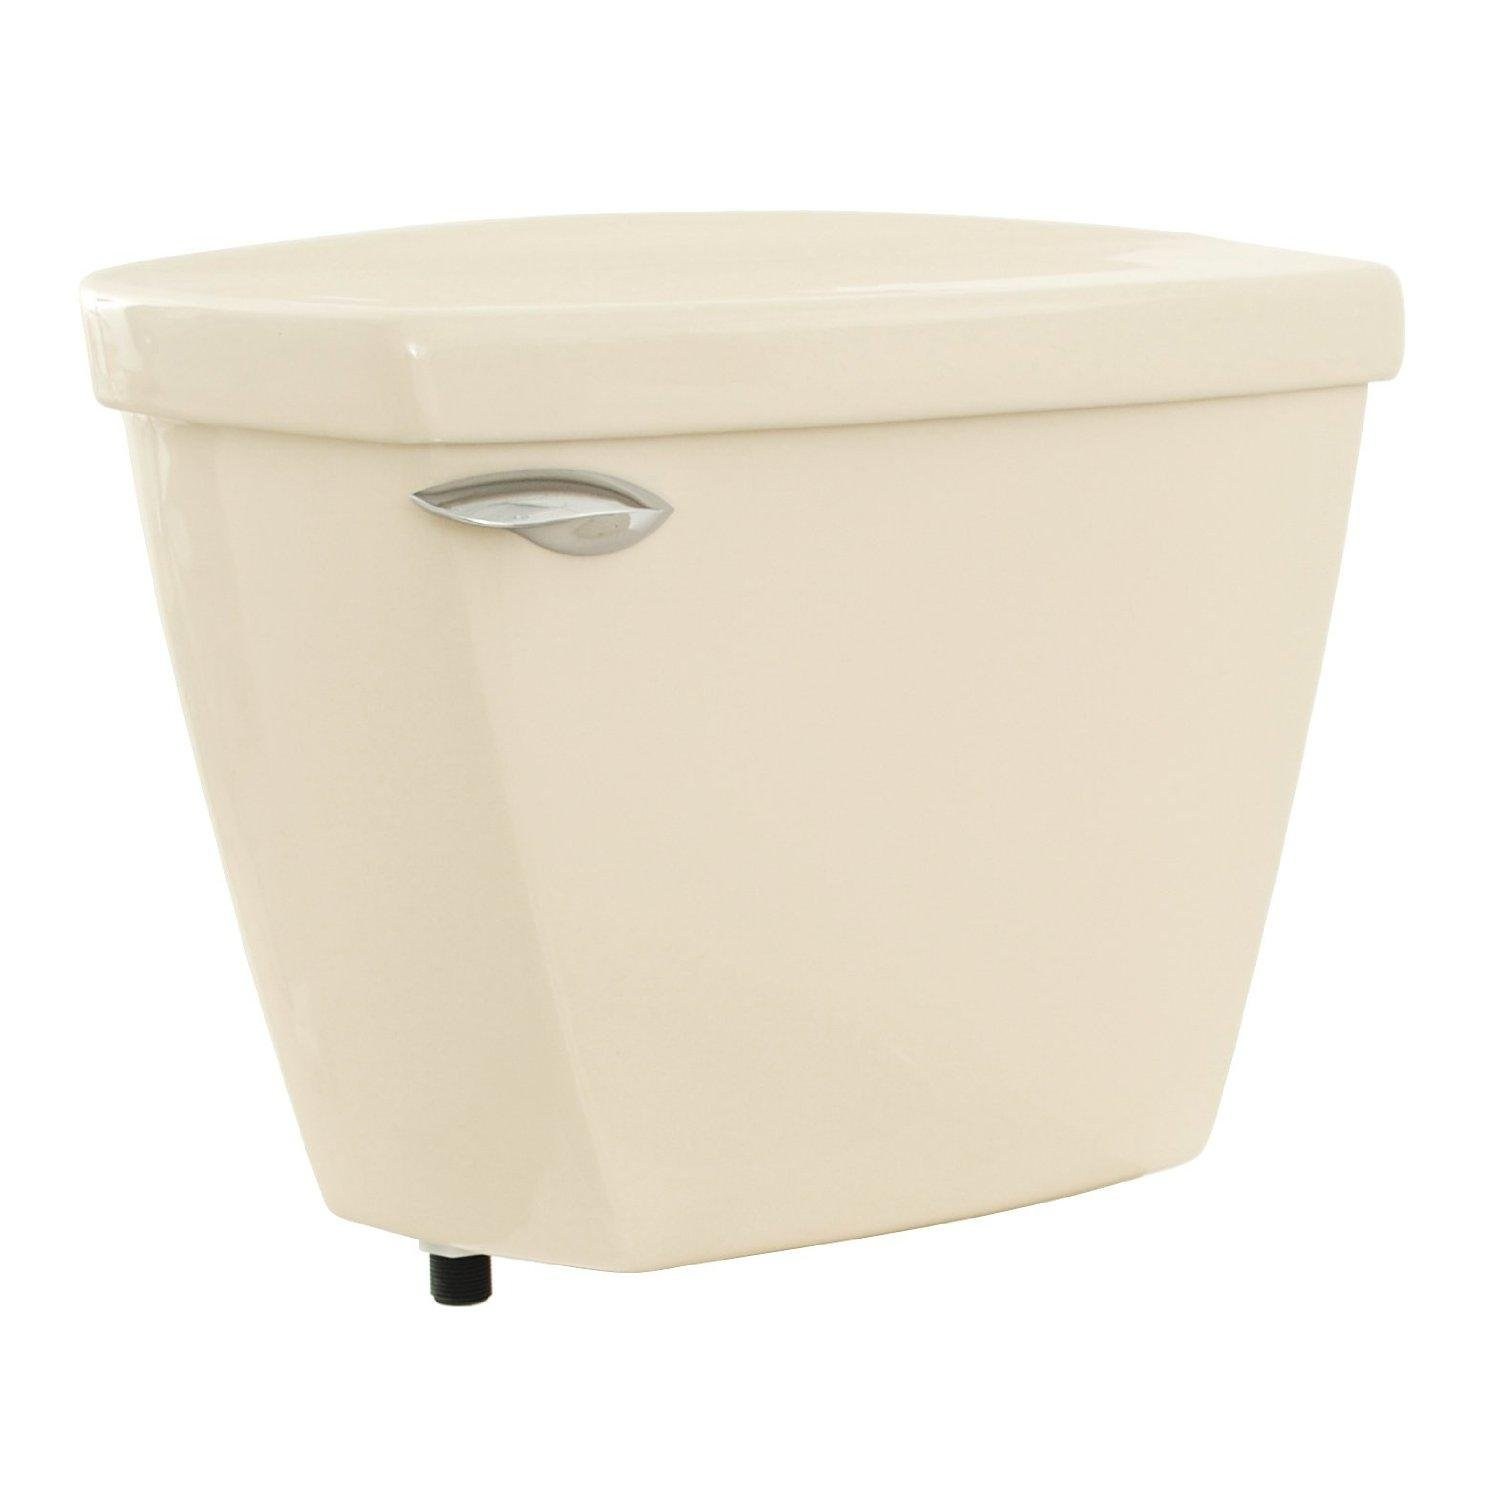 TOTO ST733-03 Dalton Tank with Flushing System, Tank Only, 1.6 ...